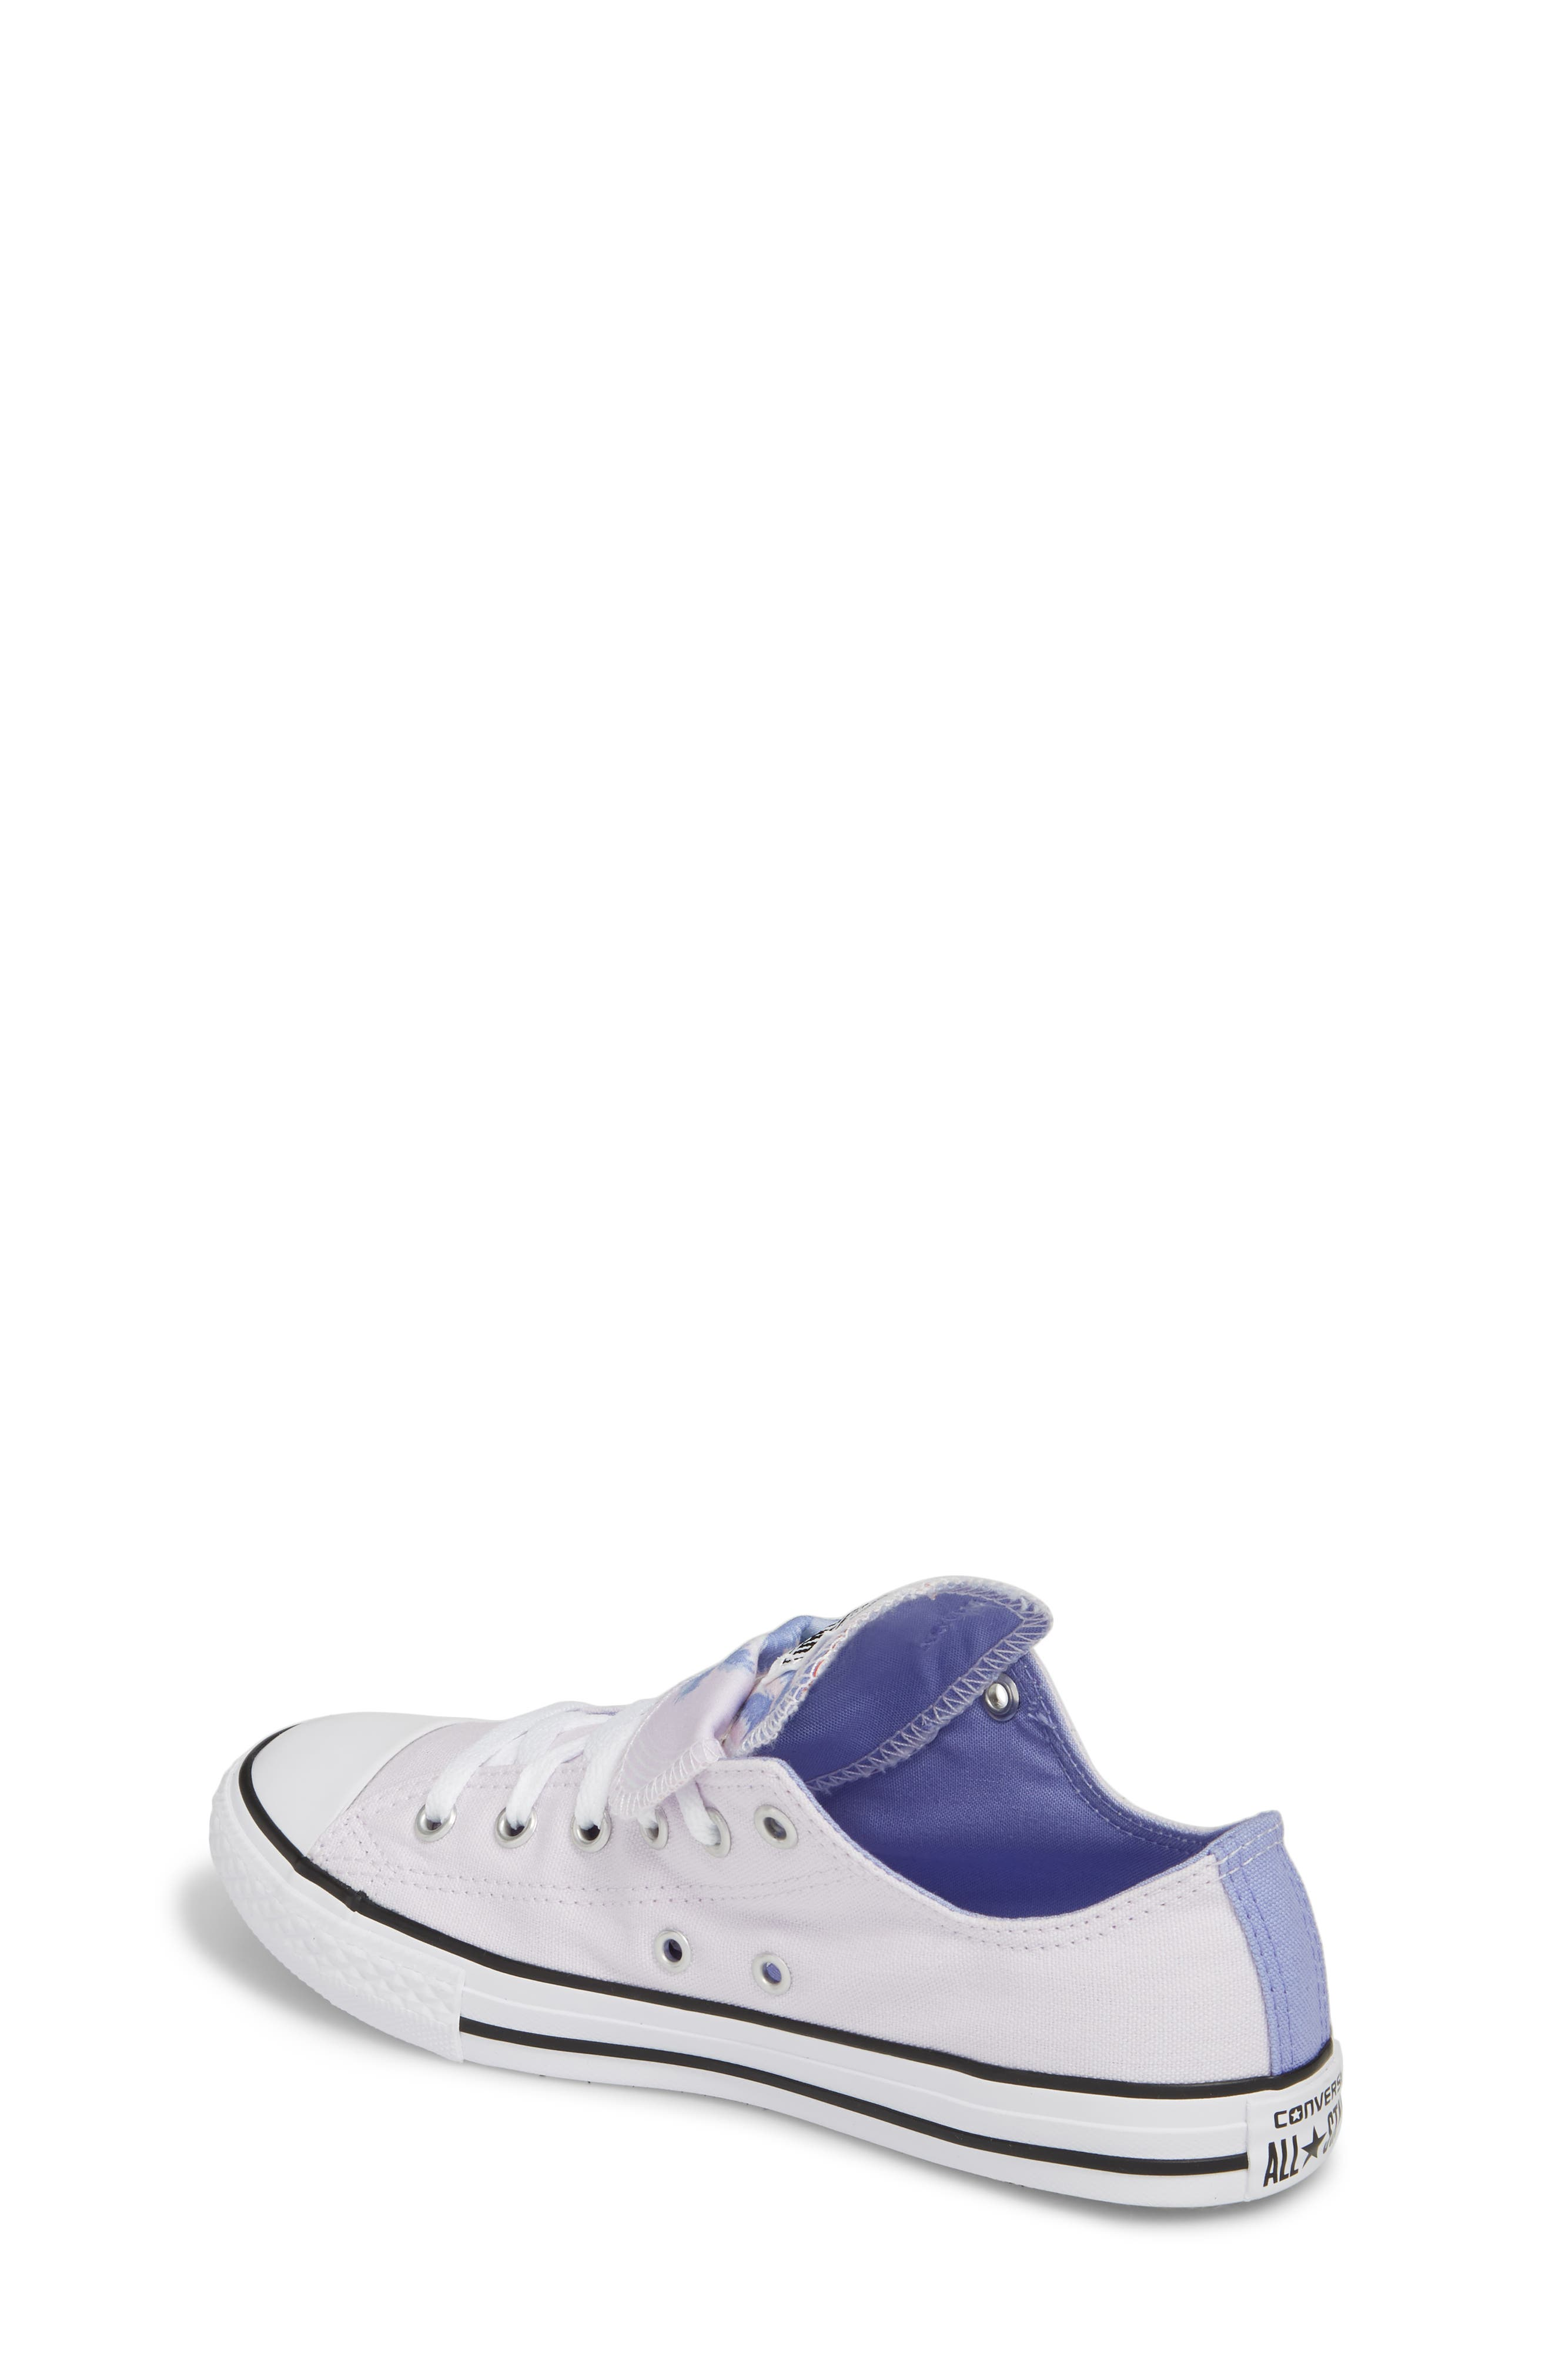 Chuck Taylor<sup>®</sup> All Star<sup>®</sup> Palm Tree Double Tongue Low Top Sneaker,                             Alternate thumbnail 2, color,                             Barely Grape